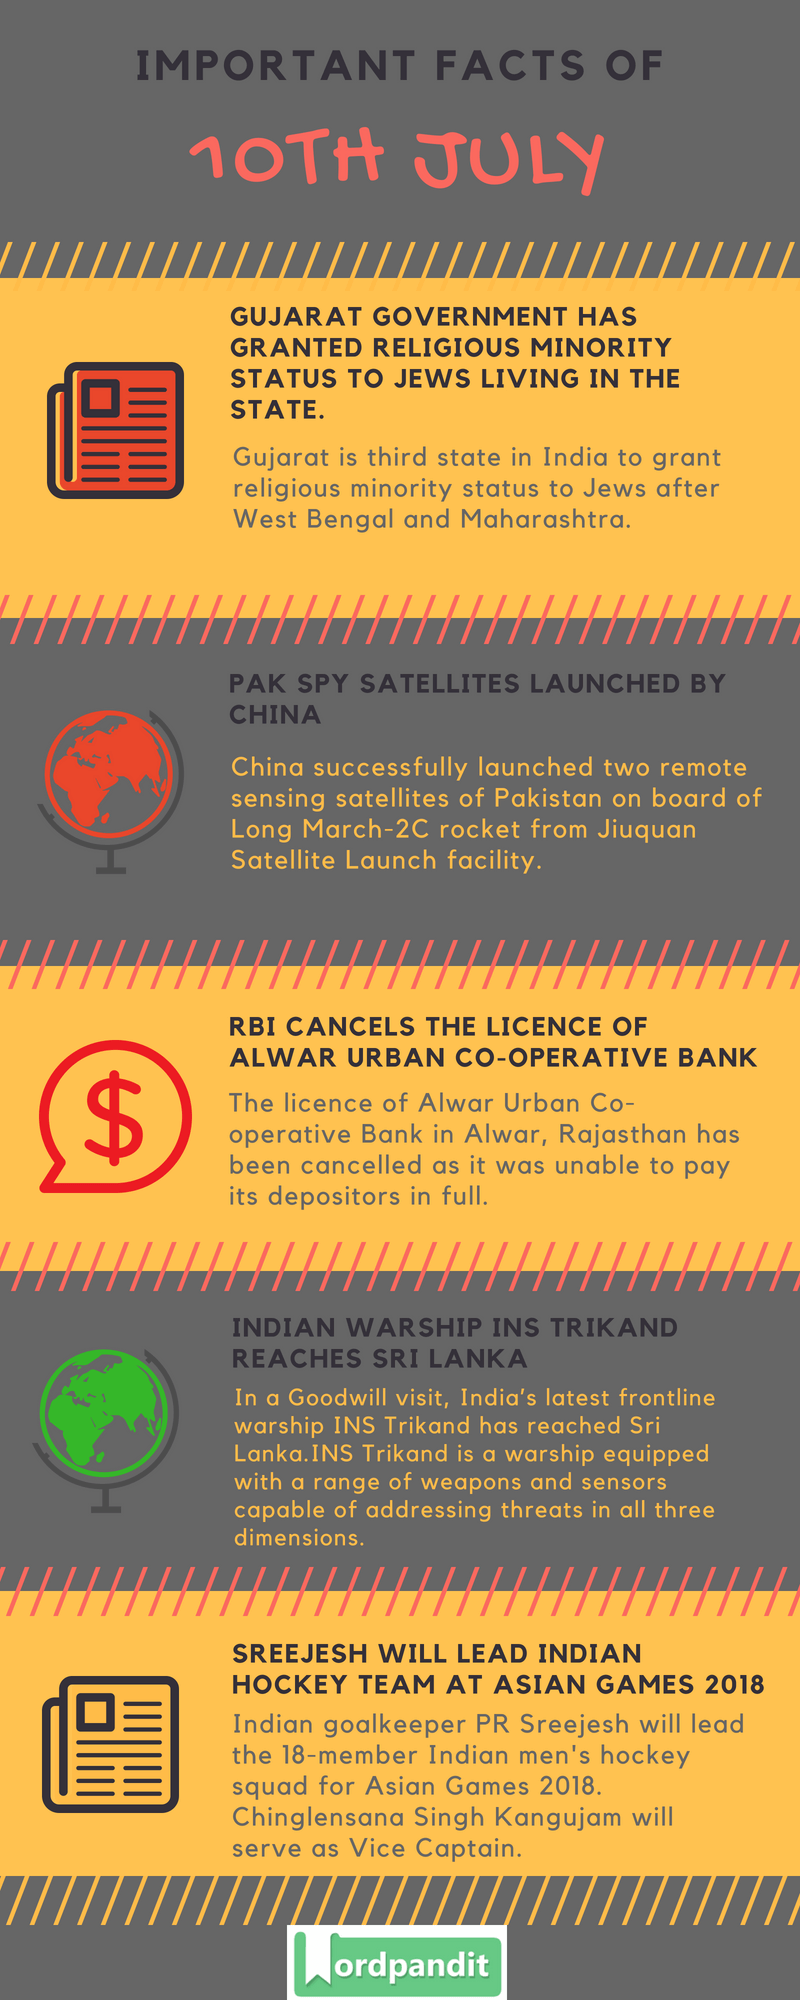 Daily Current Affairs 10 July 2018 Current Affairs Quiz July 10 2018 Current Affairs Infographic